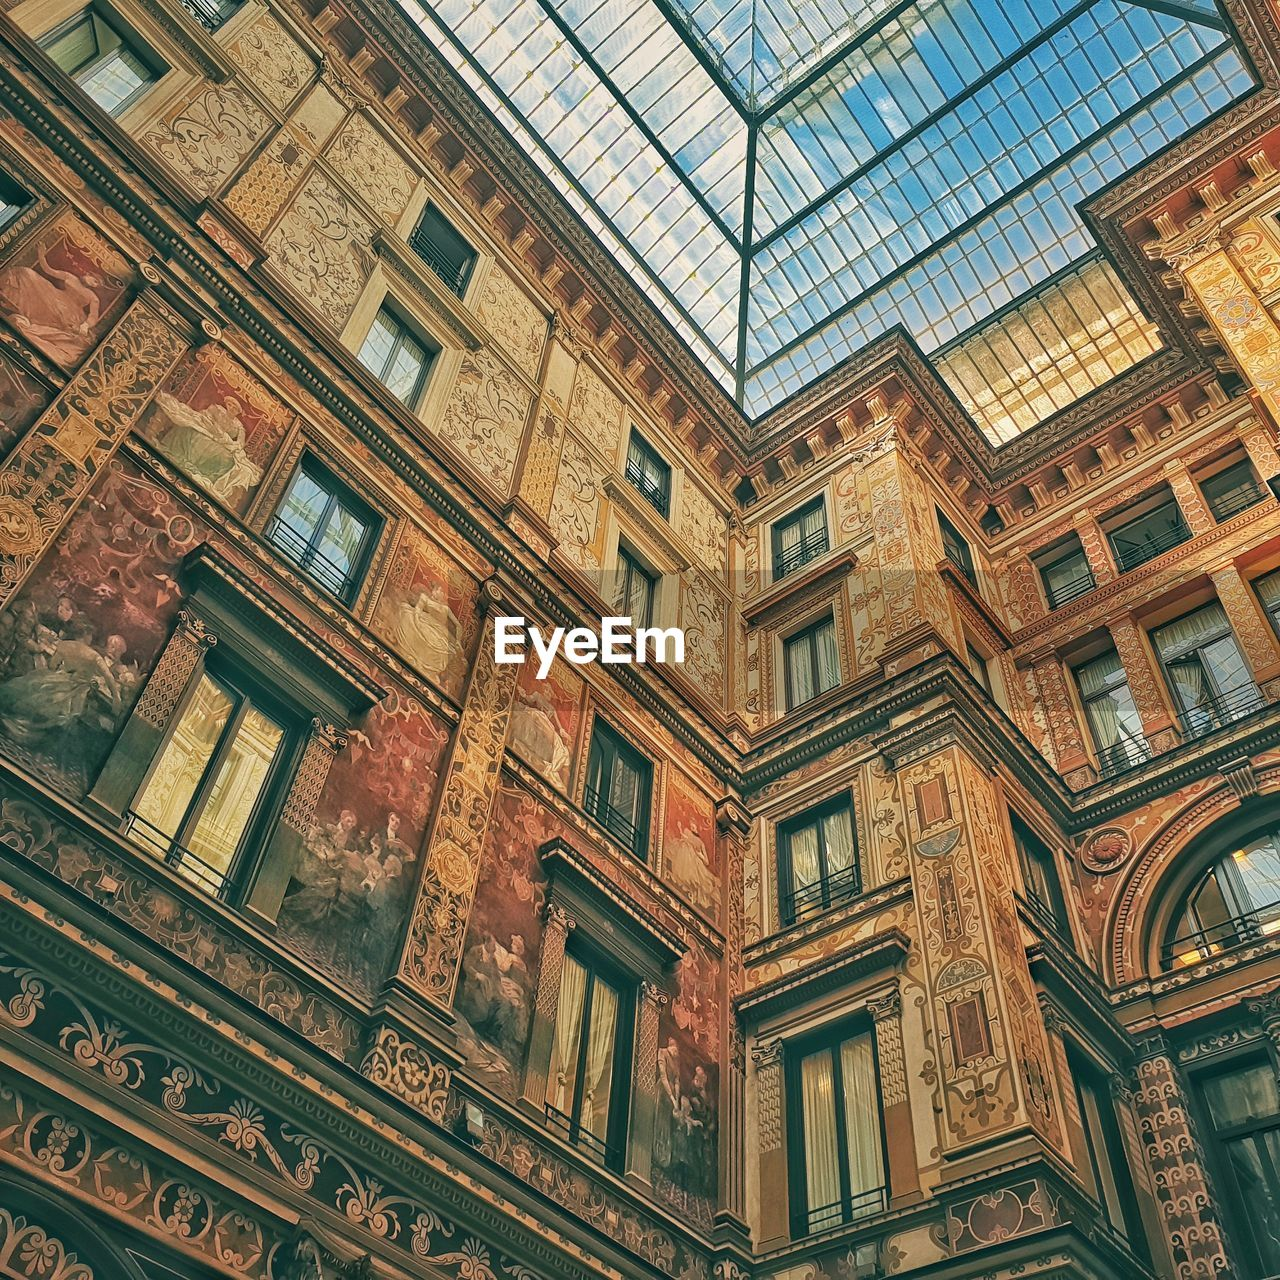 low angle view, built structure, architecture, building exterior, window, building, no people, day, glass - material, full frame, pattern, history, the past, outdoors, glass, city, design, reflection, sky, ceiling, ornate